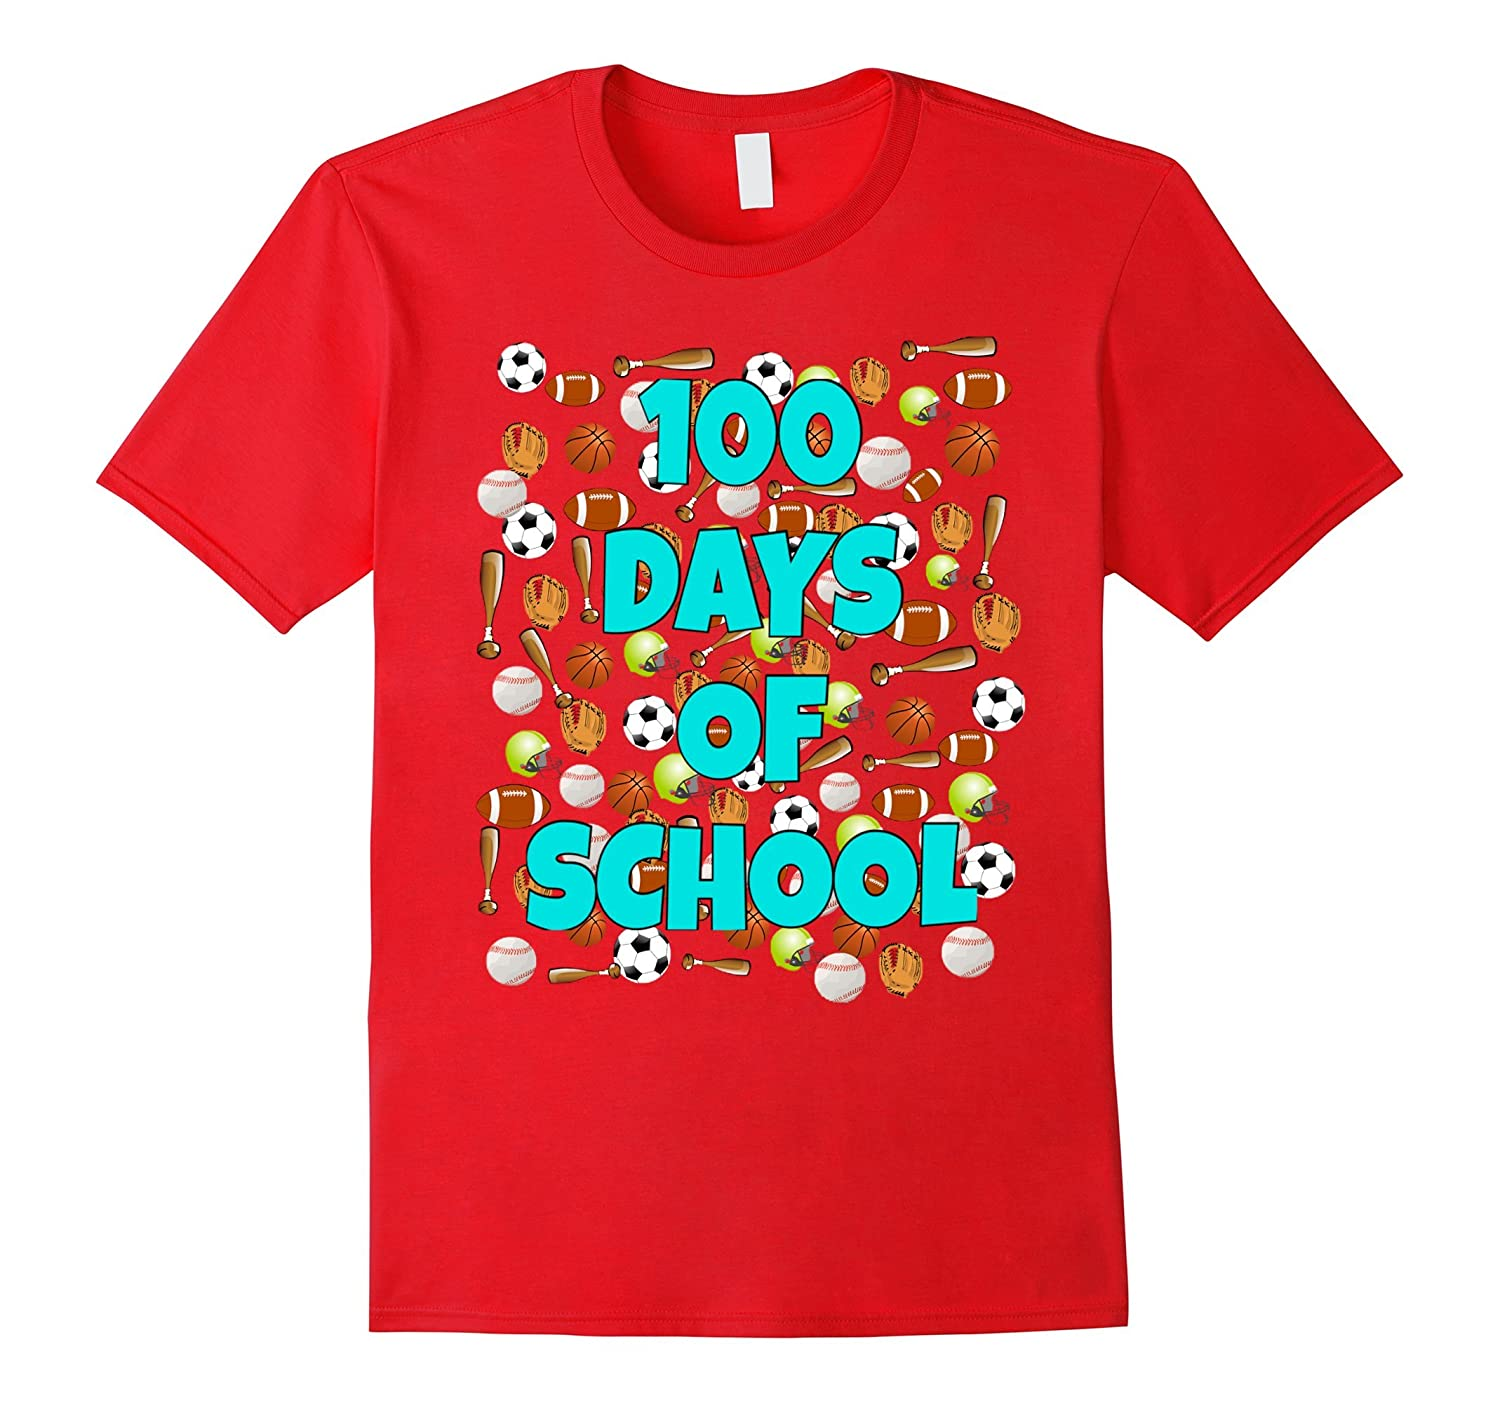 100 Days of School T Shirt for kids or teachers - Sports-Rose